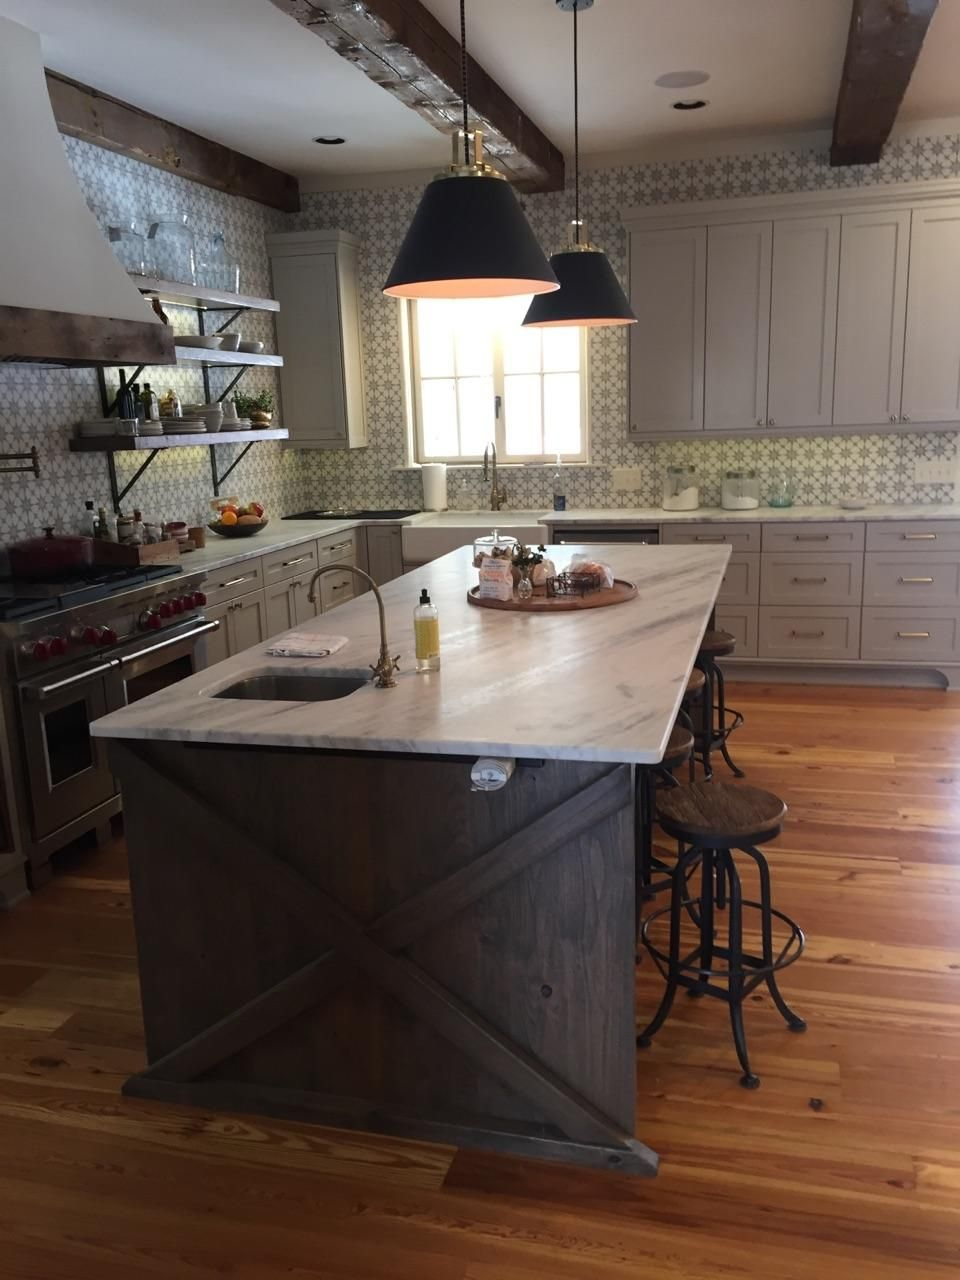 Pin By Final Touch Flooring Group On Old Projects Home Decor Home Kitchen